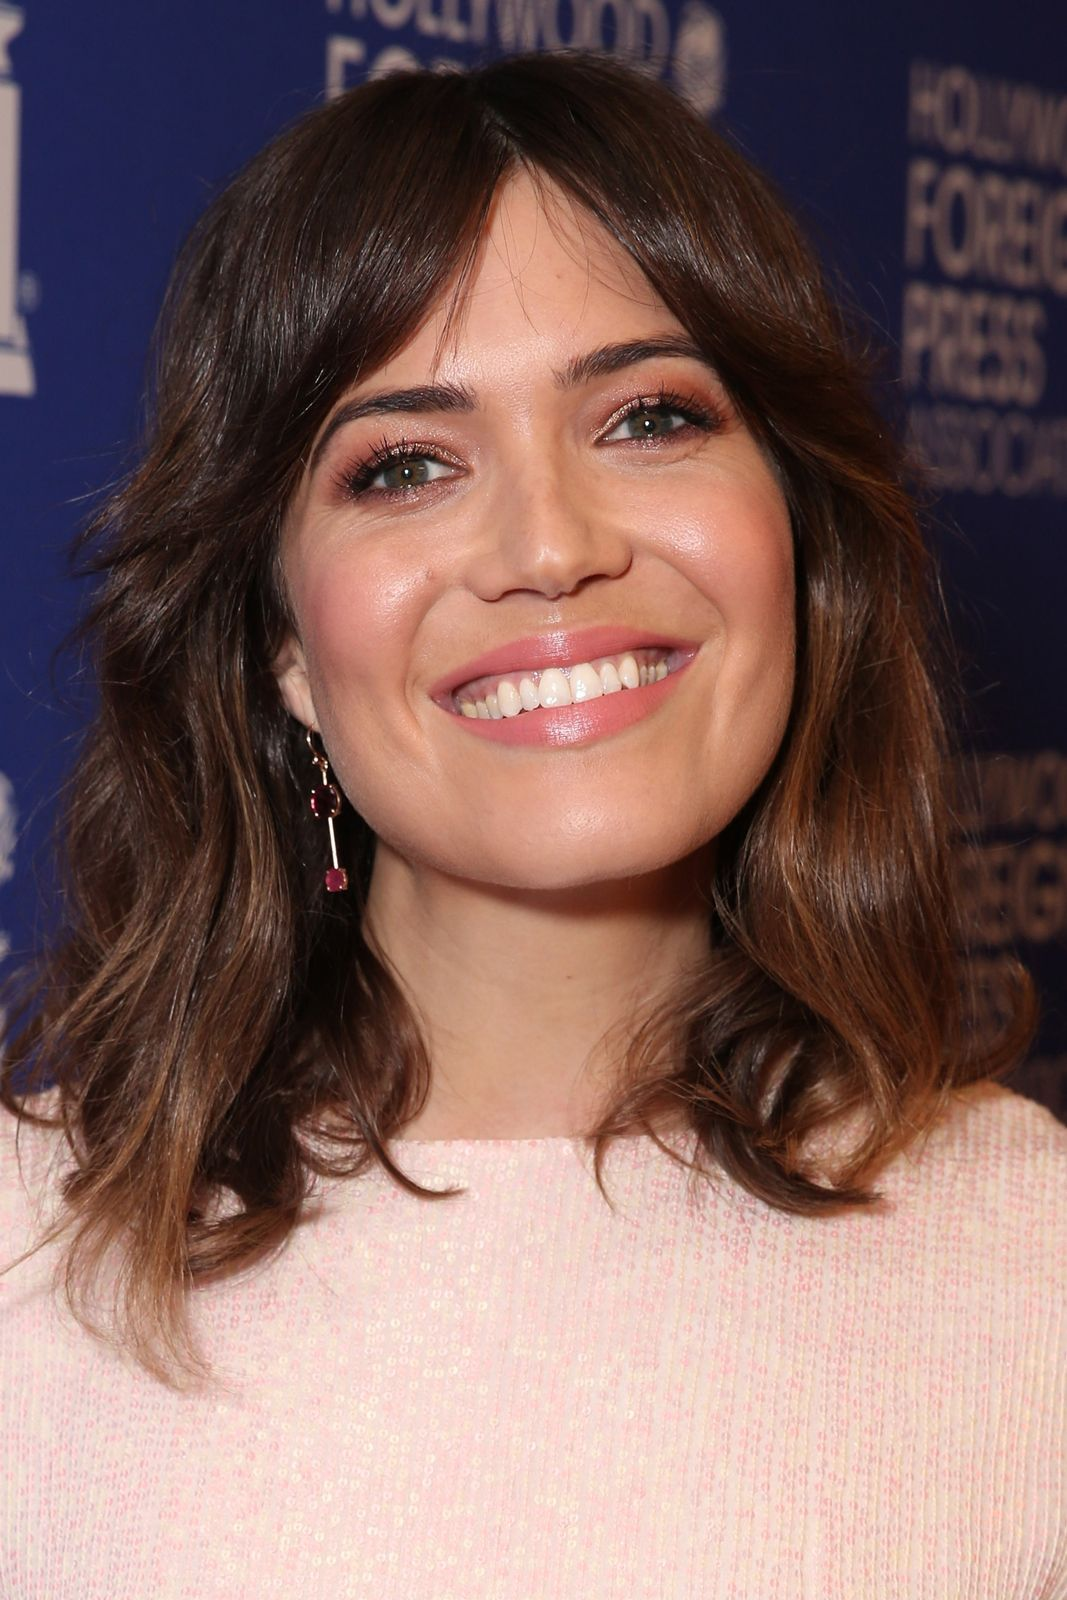 Mandy moore a beauty evolution to remember hair makeup bangs and